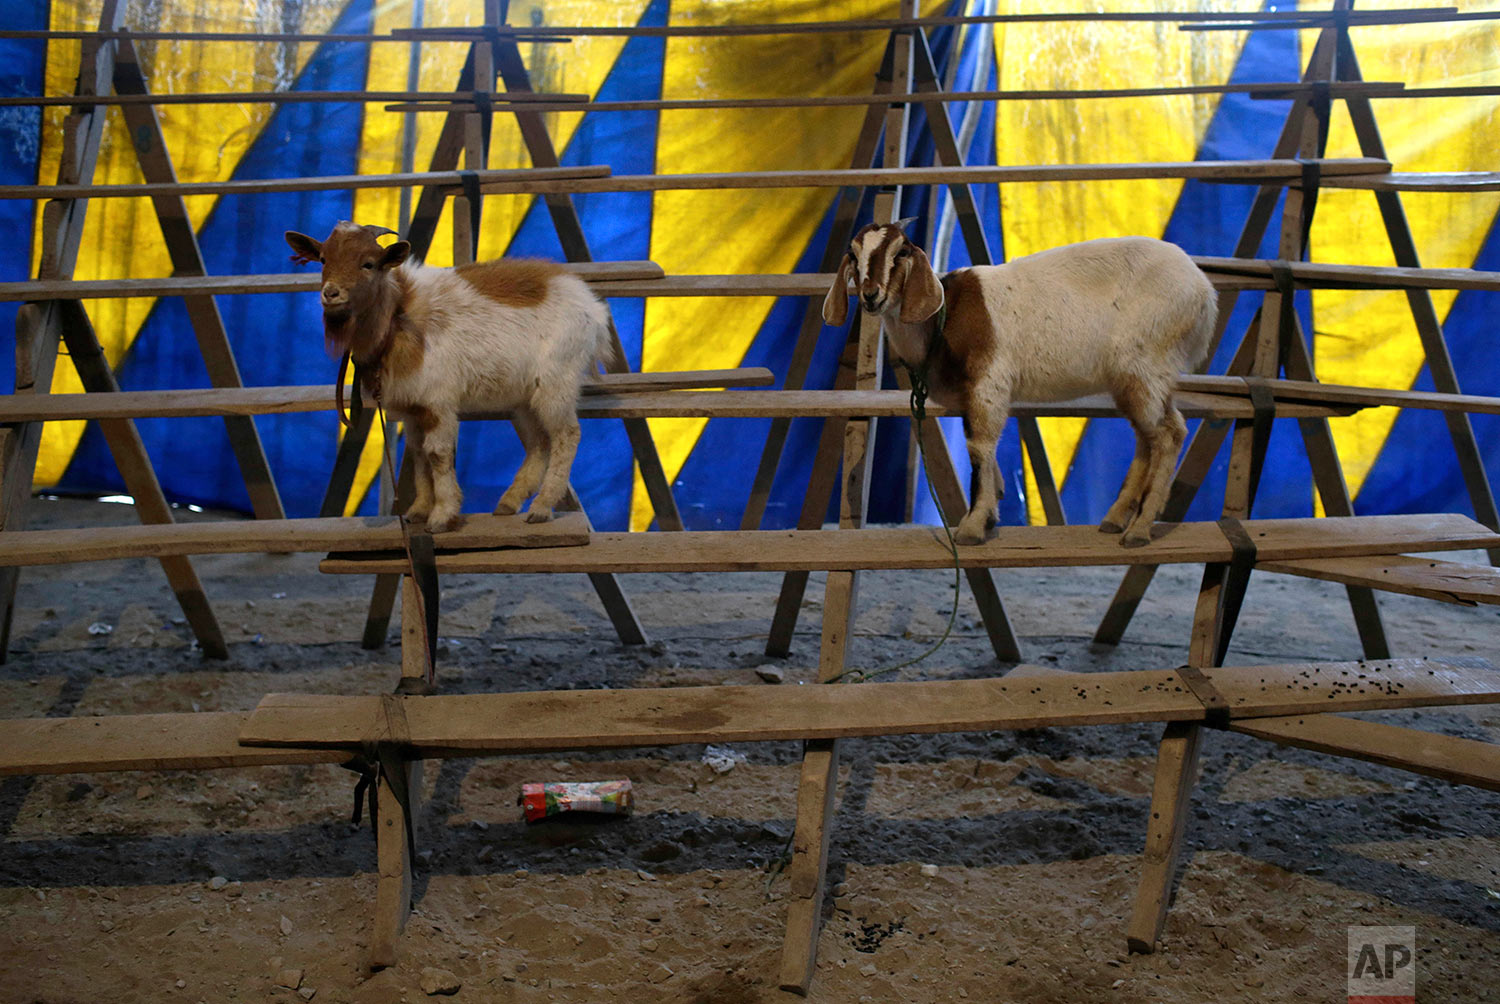 Goats named Nina and Carmecita stand leashed to the bleachers of the Tony Perejil circus, where they perform during circus acts, inside the tent set up in the shantytown of Puente Piedra on the outskirts of Lima, Peru, July 8, 2018. (AP Photo/Martin Mejia)